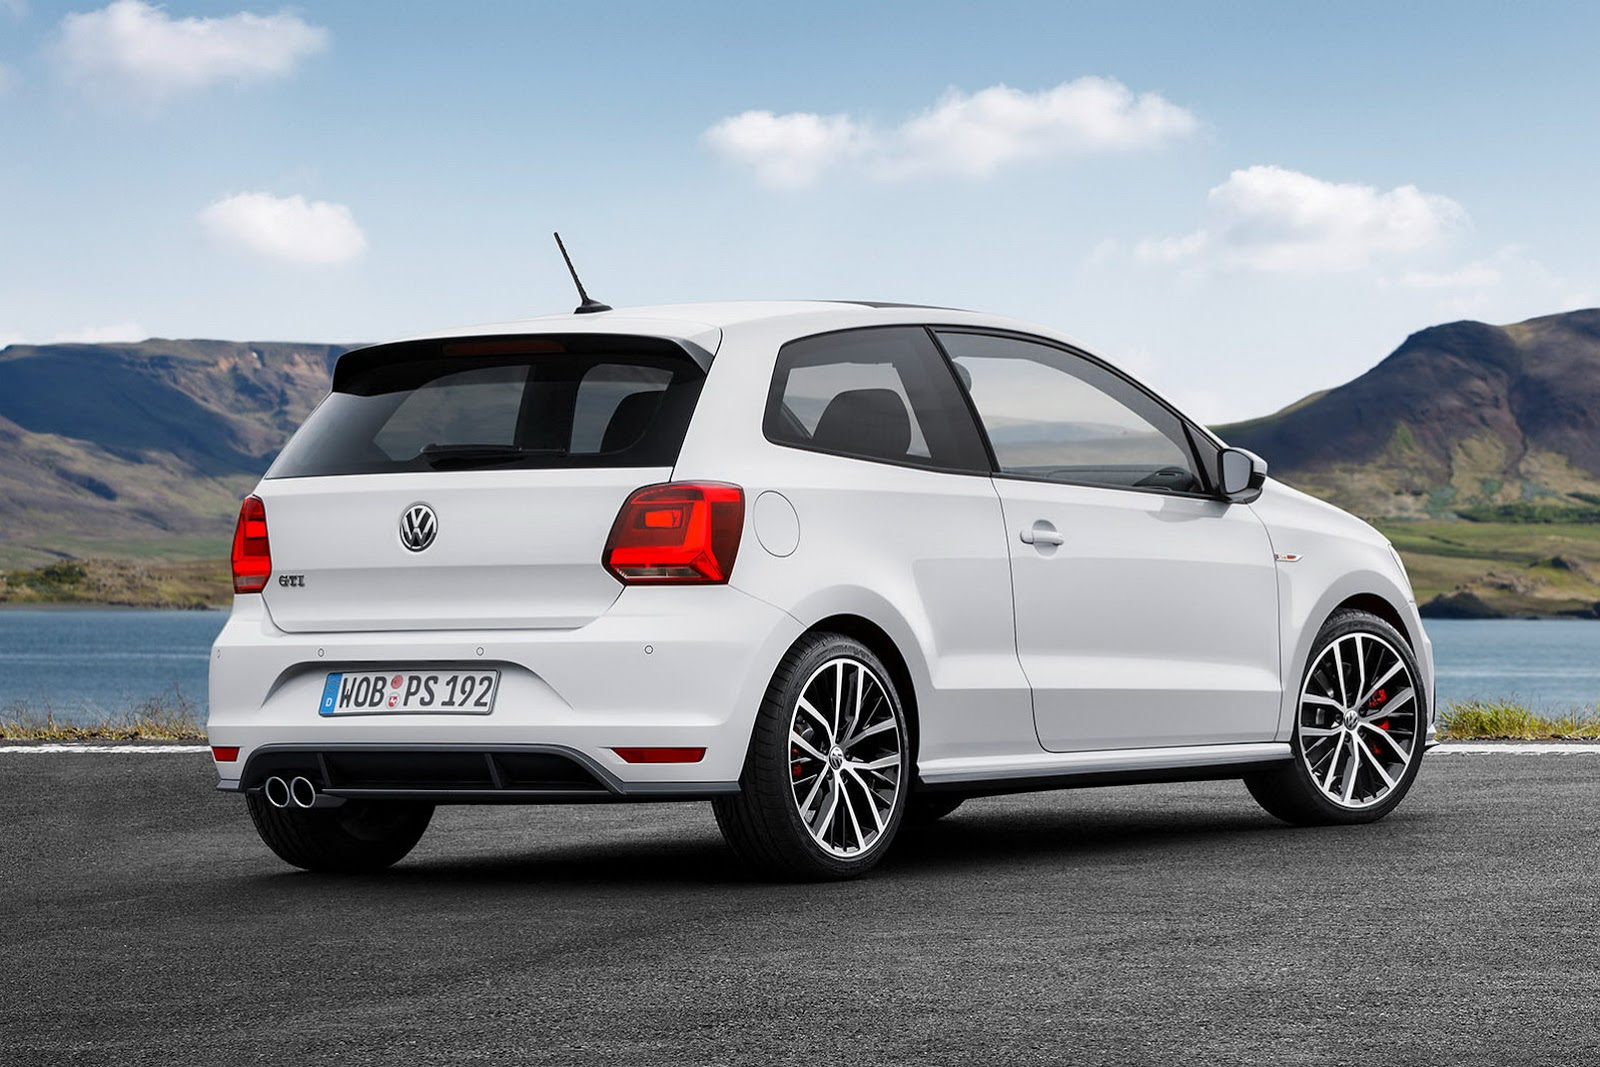 volkswagen polo gti facelift 2015 volkswagen autopareri. Black Bedroom Furniture Sets. Home Design Ideas